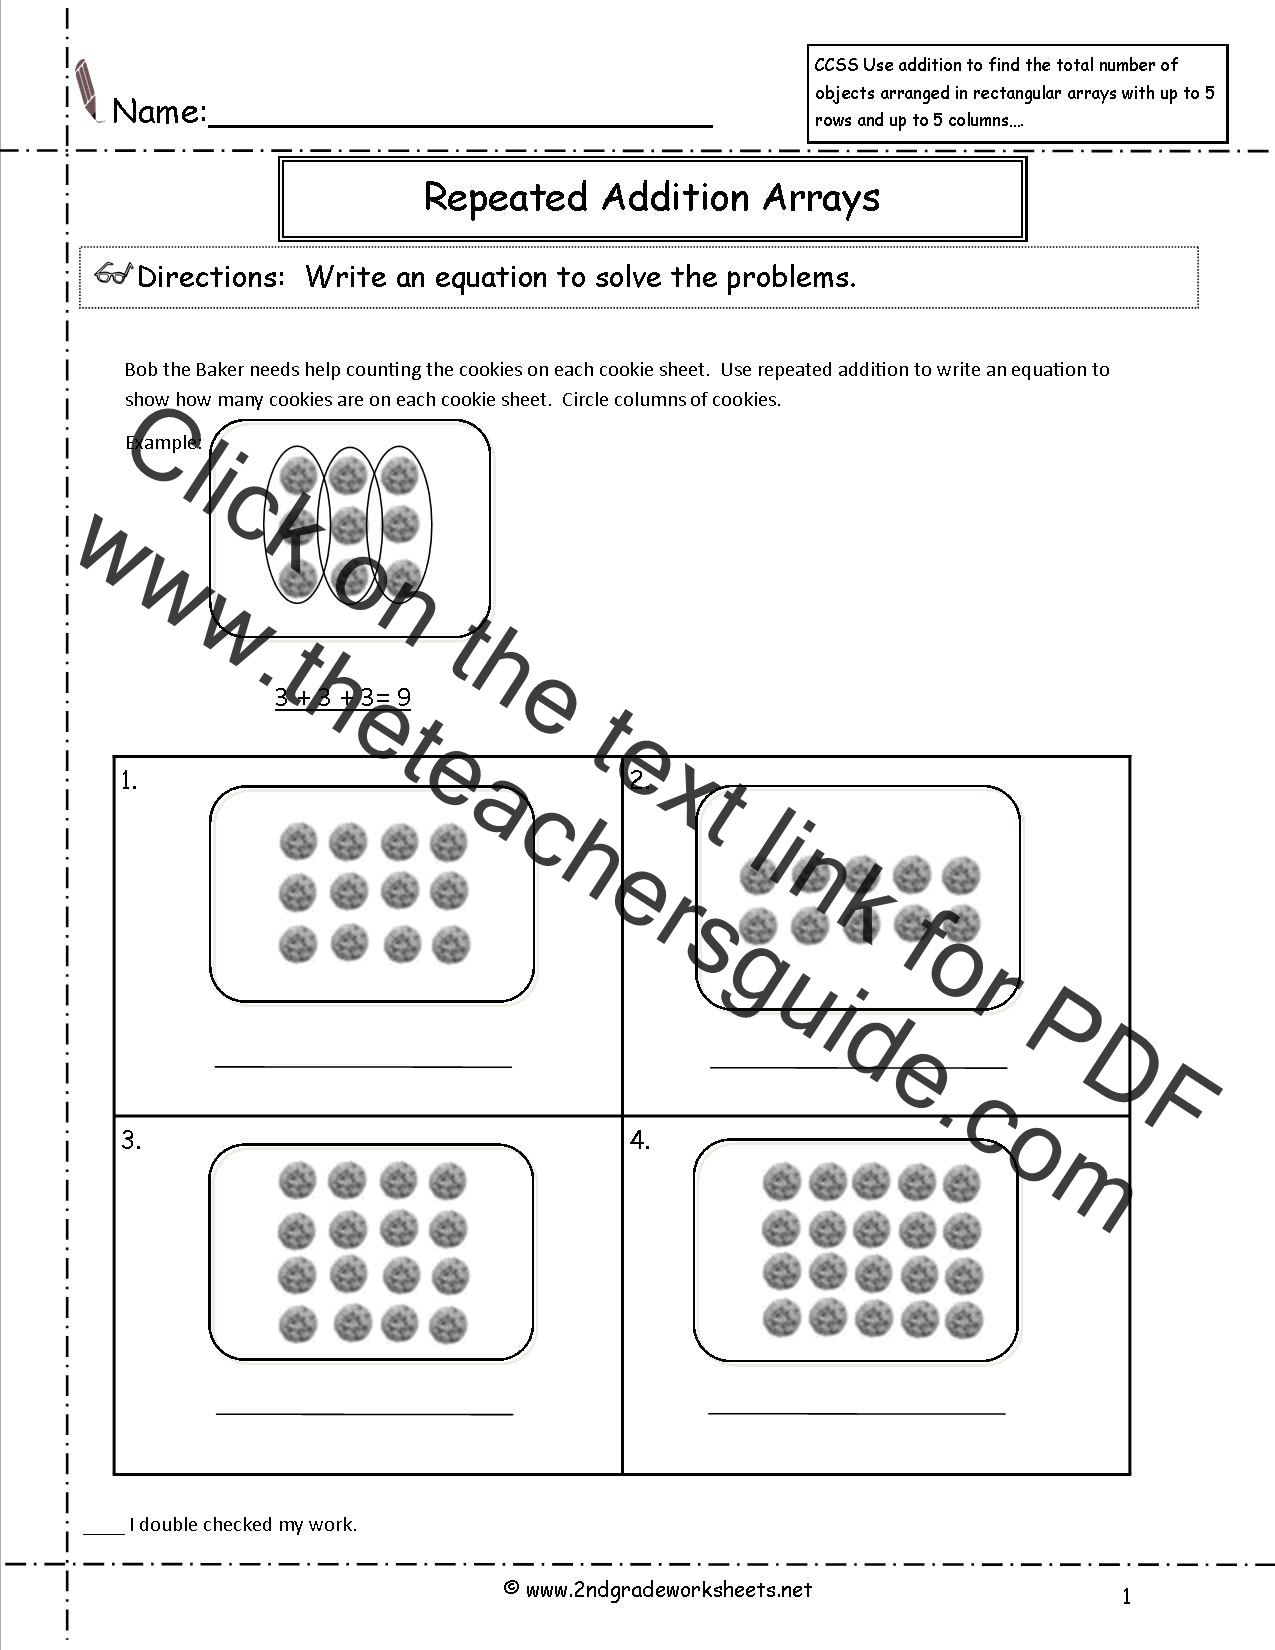 Printables Common Core Math Worksheets For 2nd Grade 2nd grade math common core state standards worksheets ccss 2 oa 4 worksheets